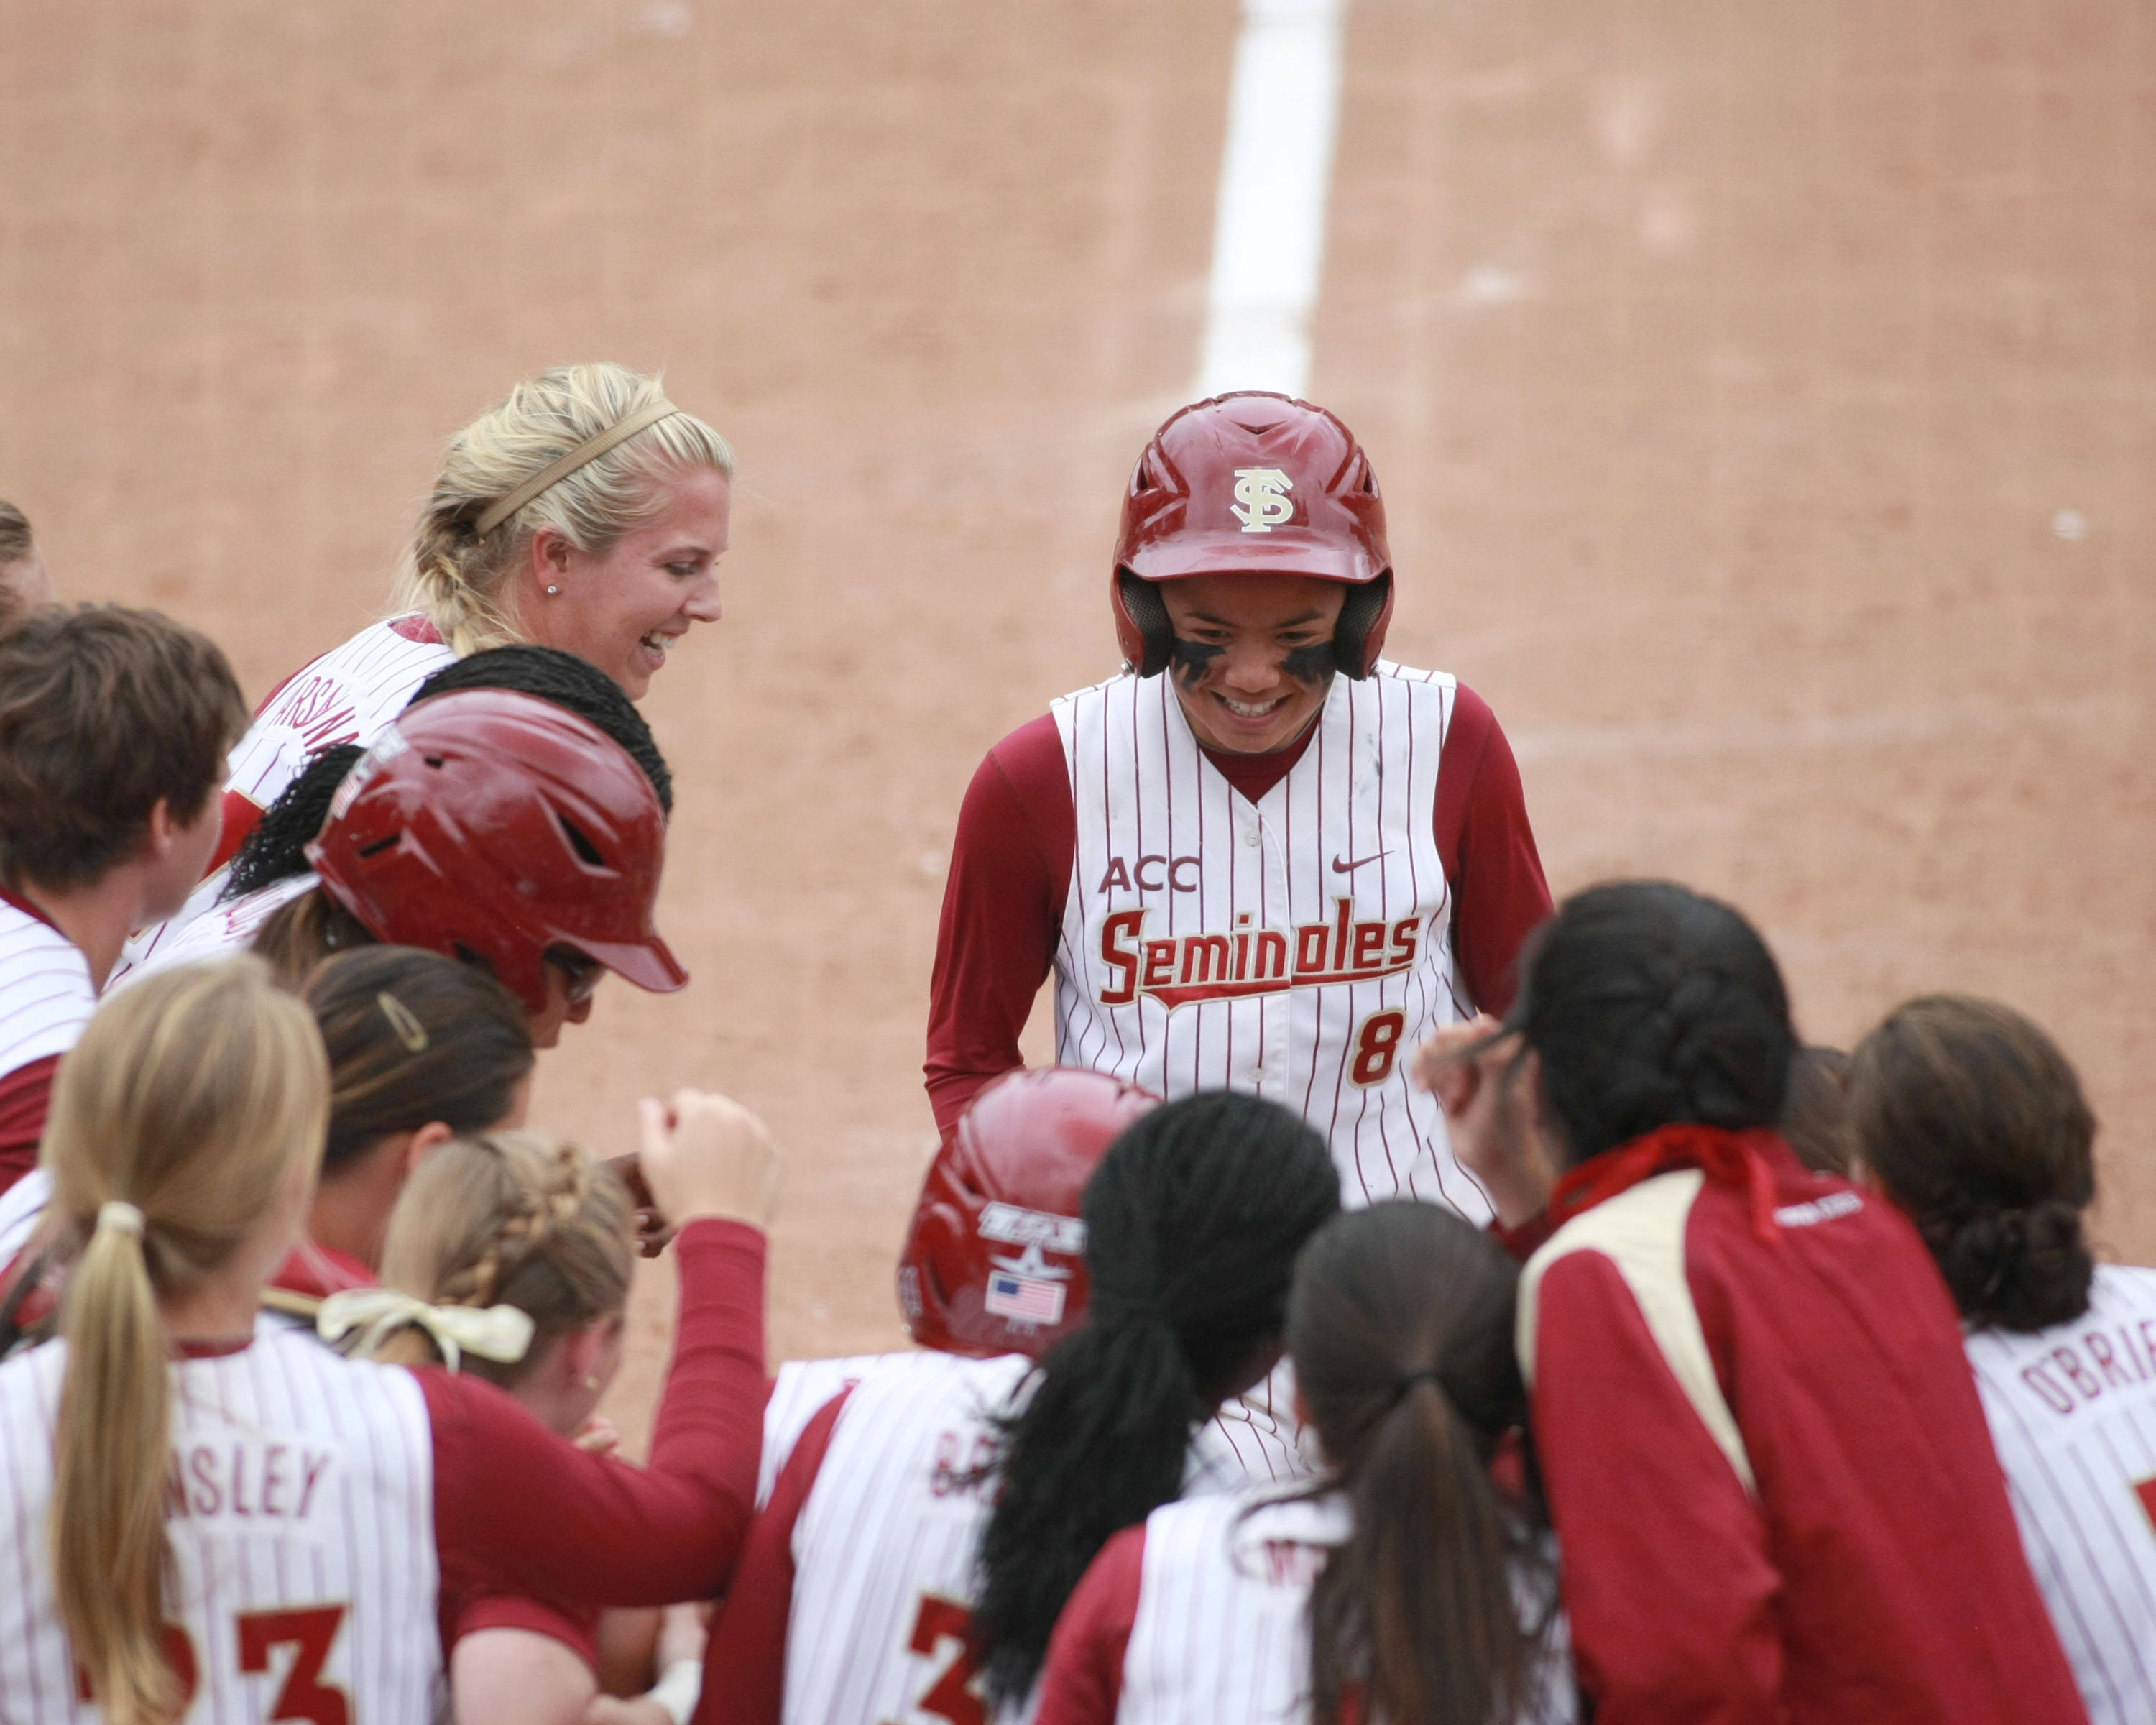 Courtney Senas is mobbed by teammates after hitting a home run in the ACC Championship game.  The Seminoles went on to win clinching a spot in the NCAA Tournament.